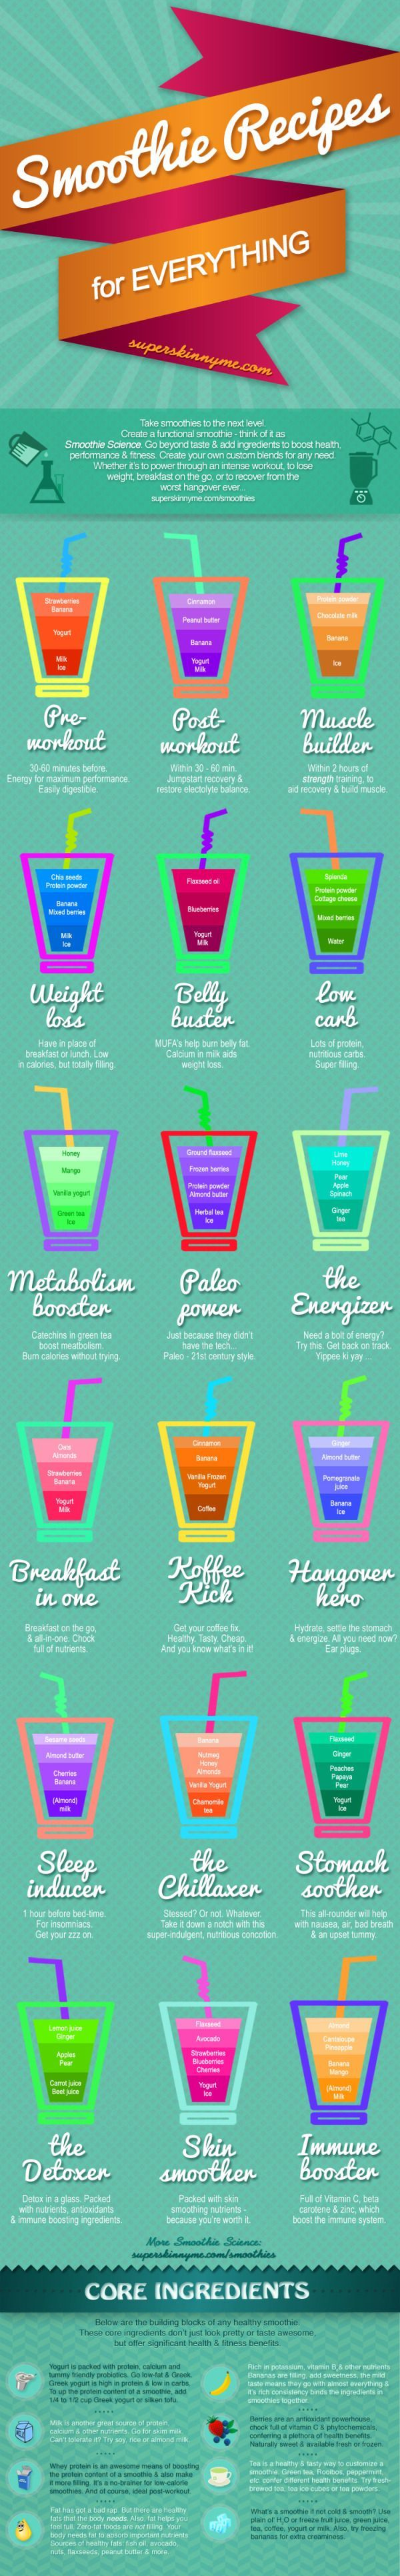 18 #Smoothie #Recipes in an #Infographic - http://www.finedininglovers.com/blog/food-drinks/smoothie-recipes/